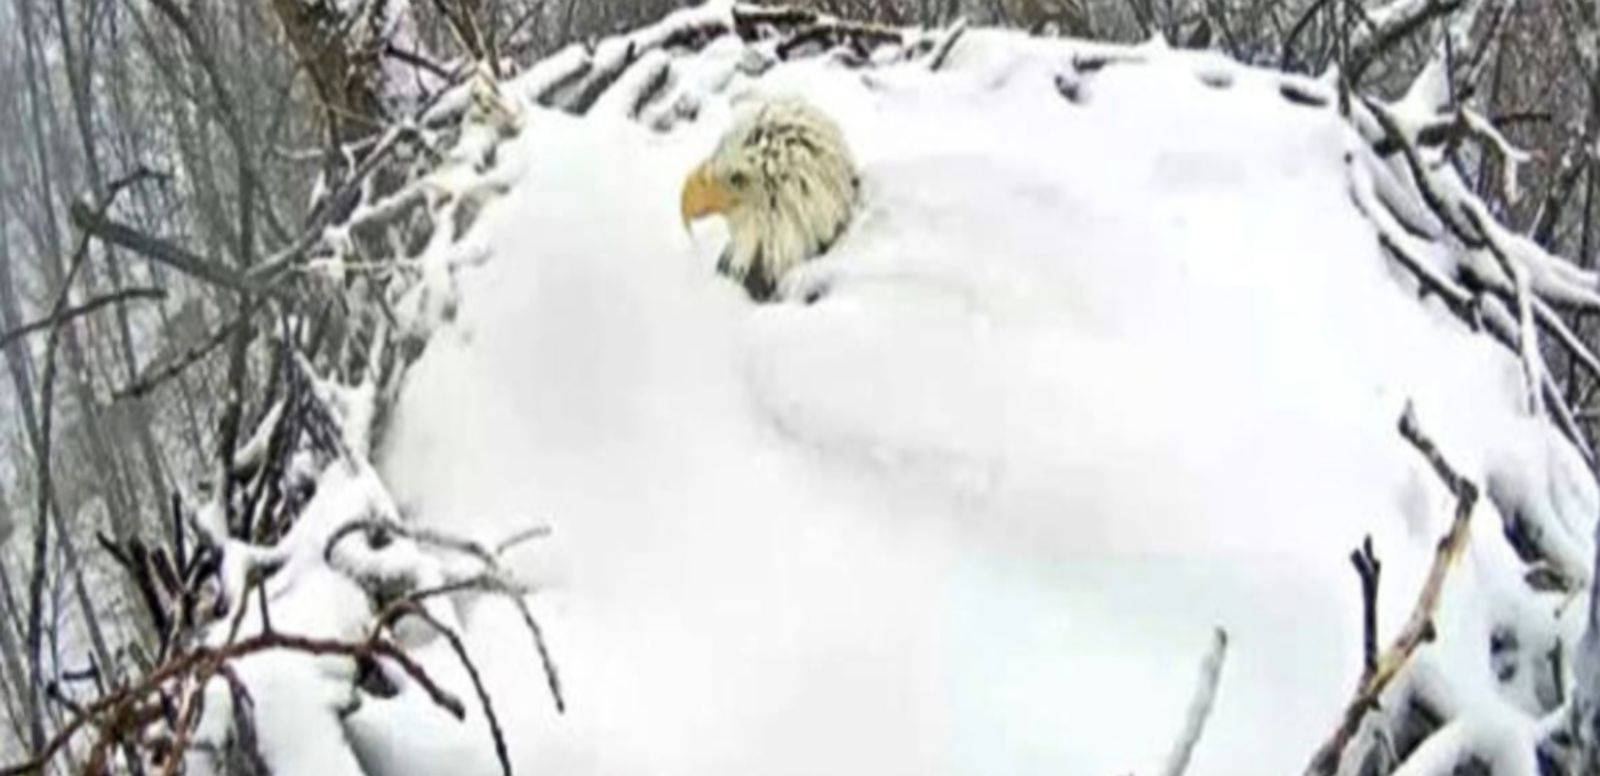 VIDEO: The bald eagles' dedication to parenthood was captured on a webcam in a Pennsylvania state park.